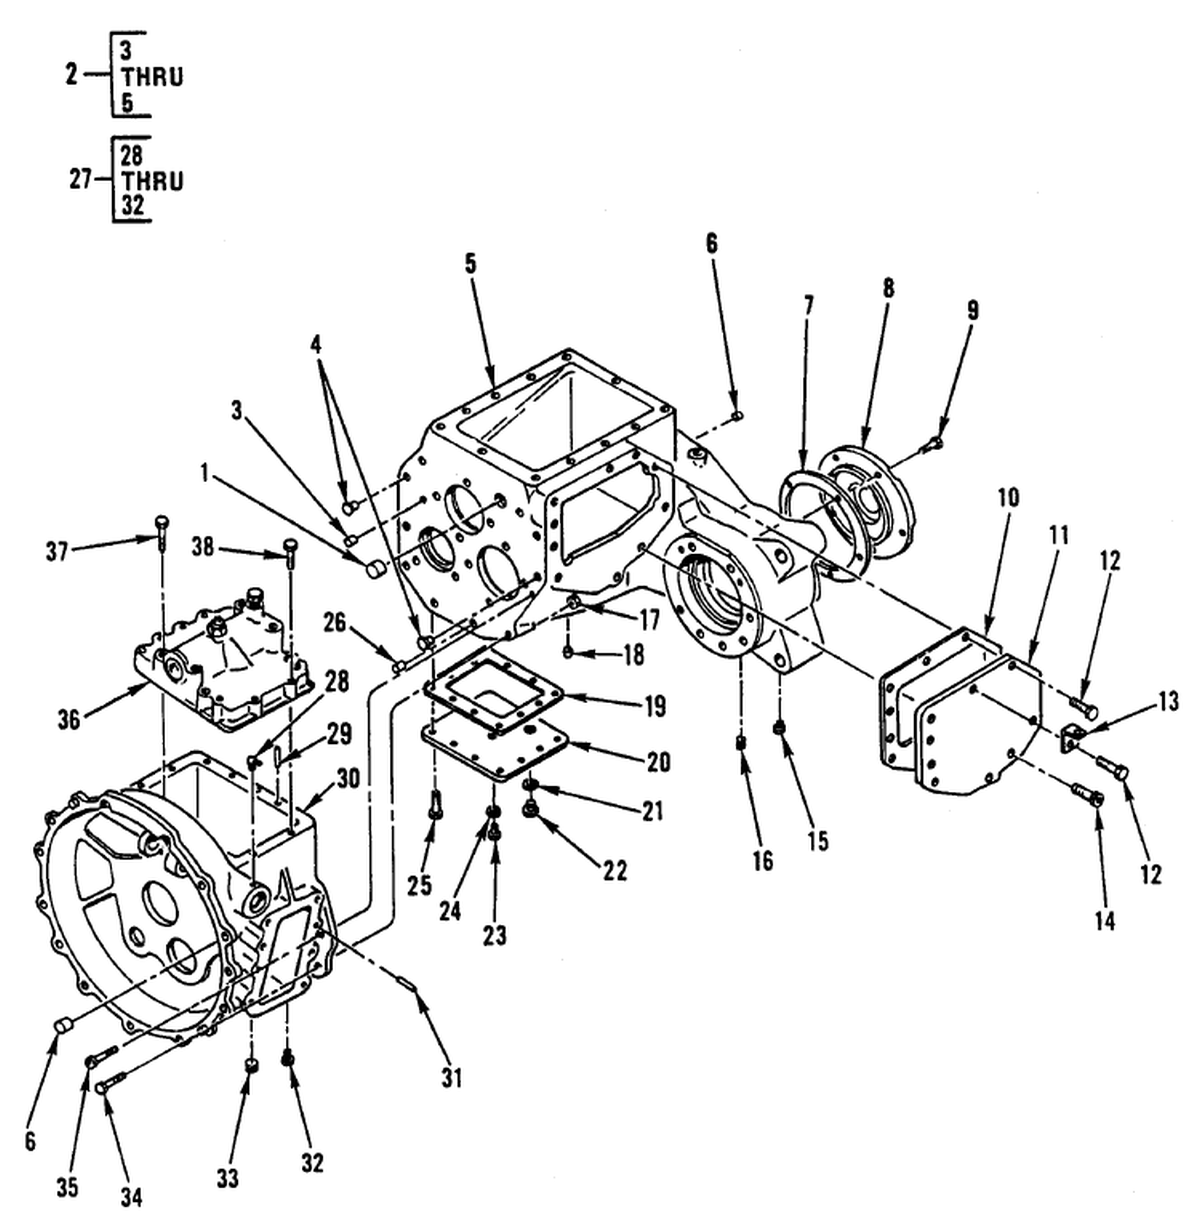 0112 00-2 Figure 111. Transmission Assembly (Main and/or Sec